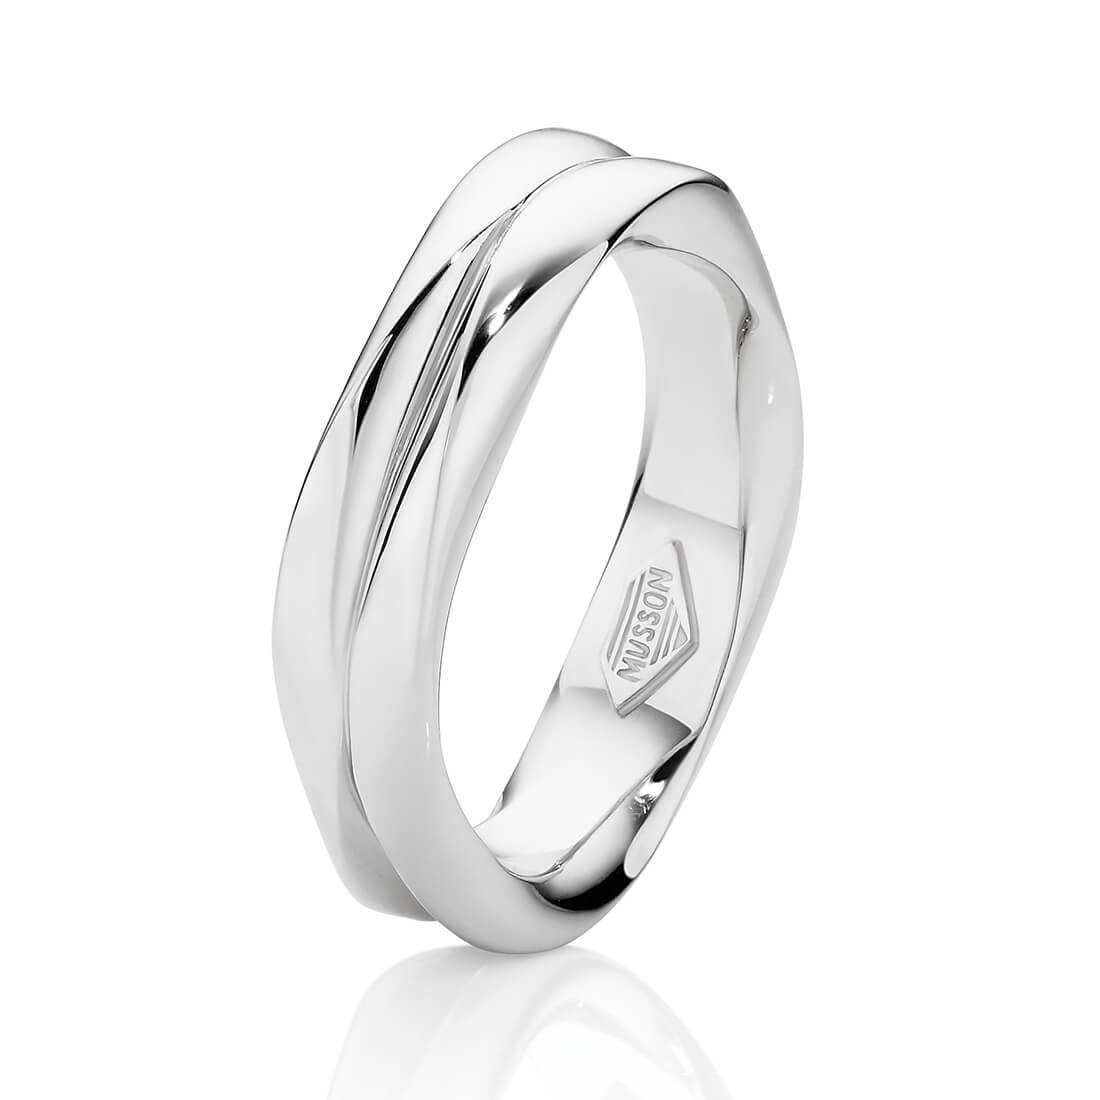 Ring With Ms Entwined